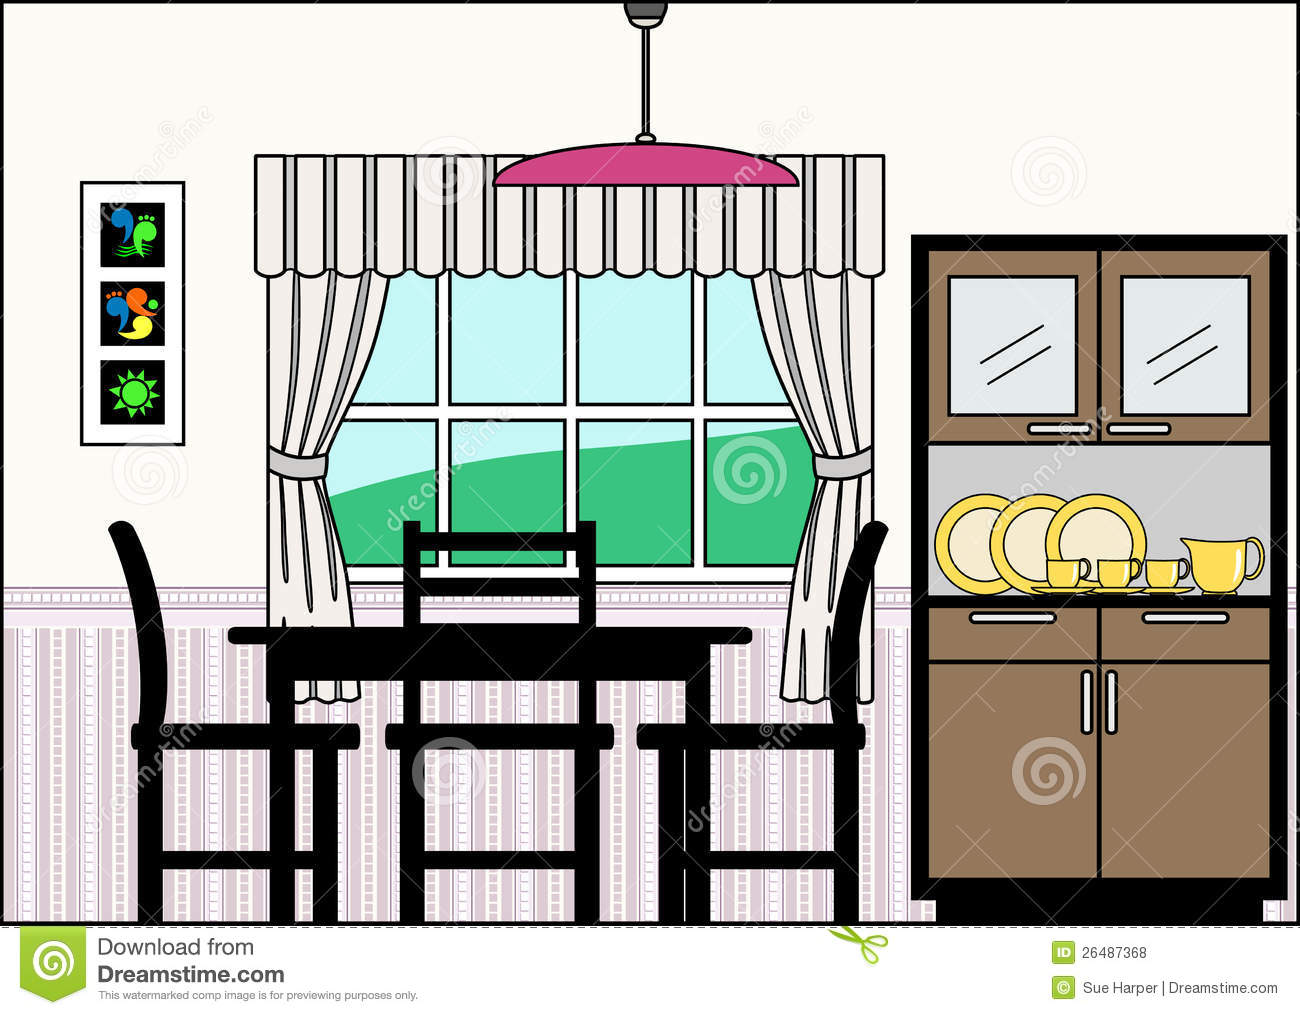 Dining Room With Furniture And Fittings Stock Vector